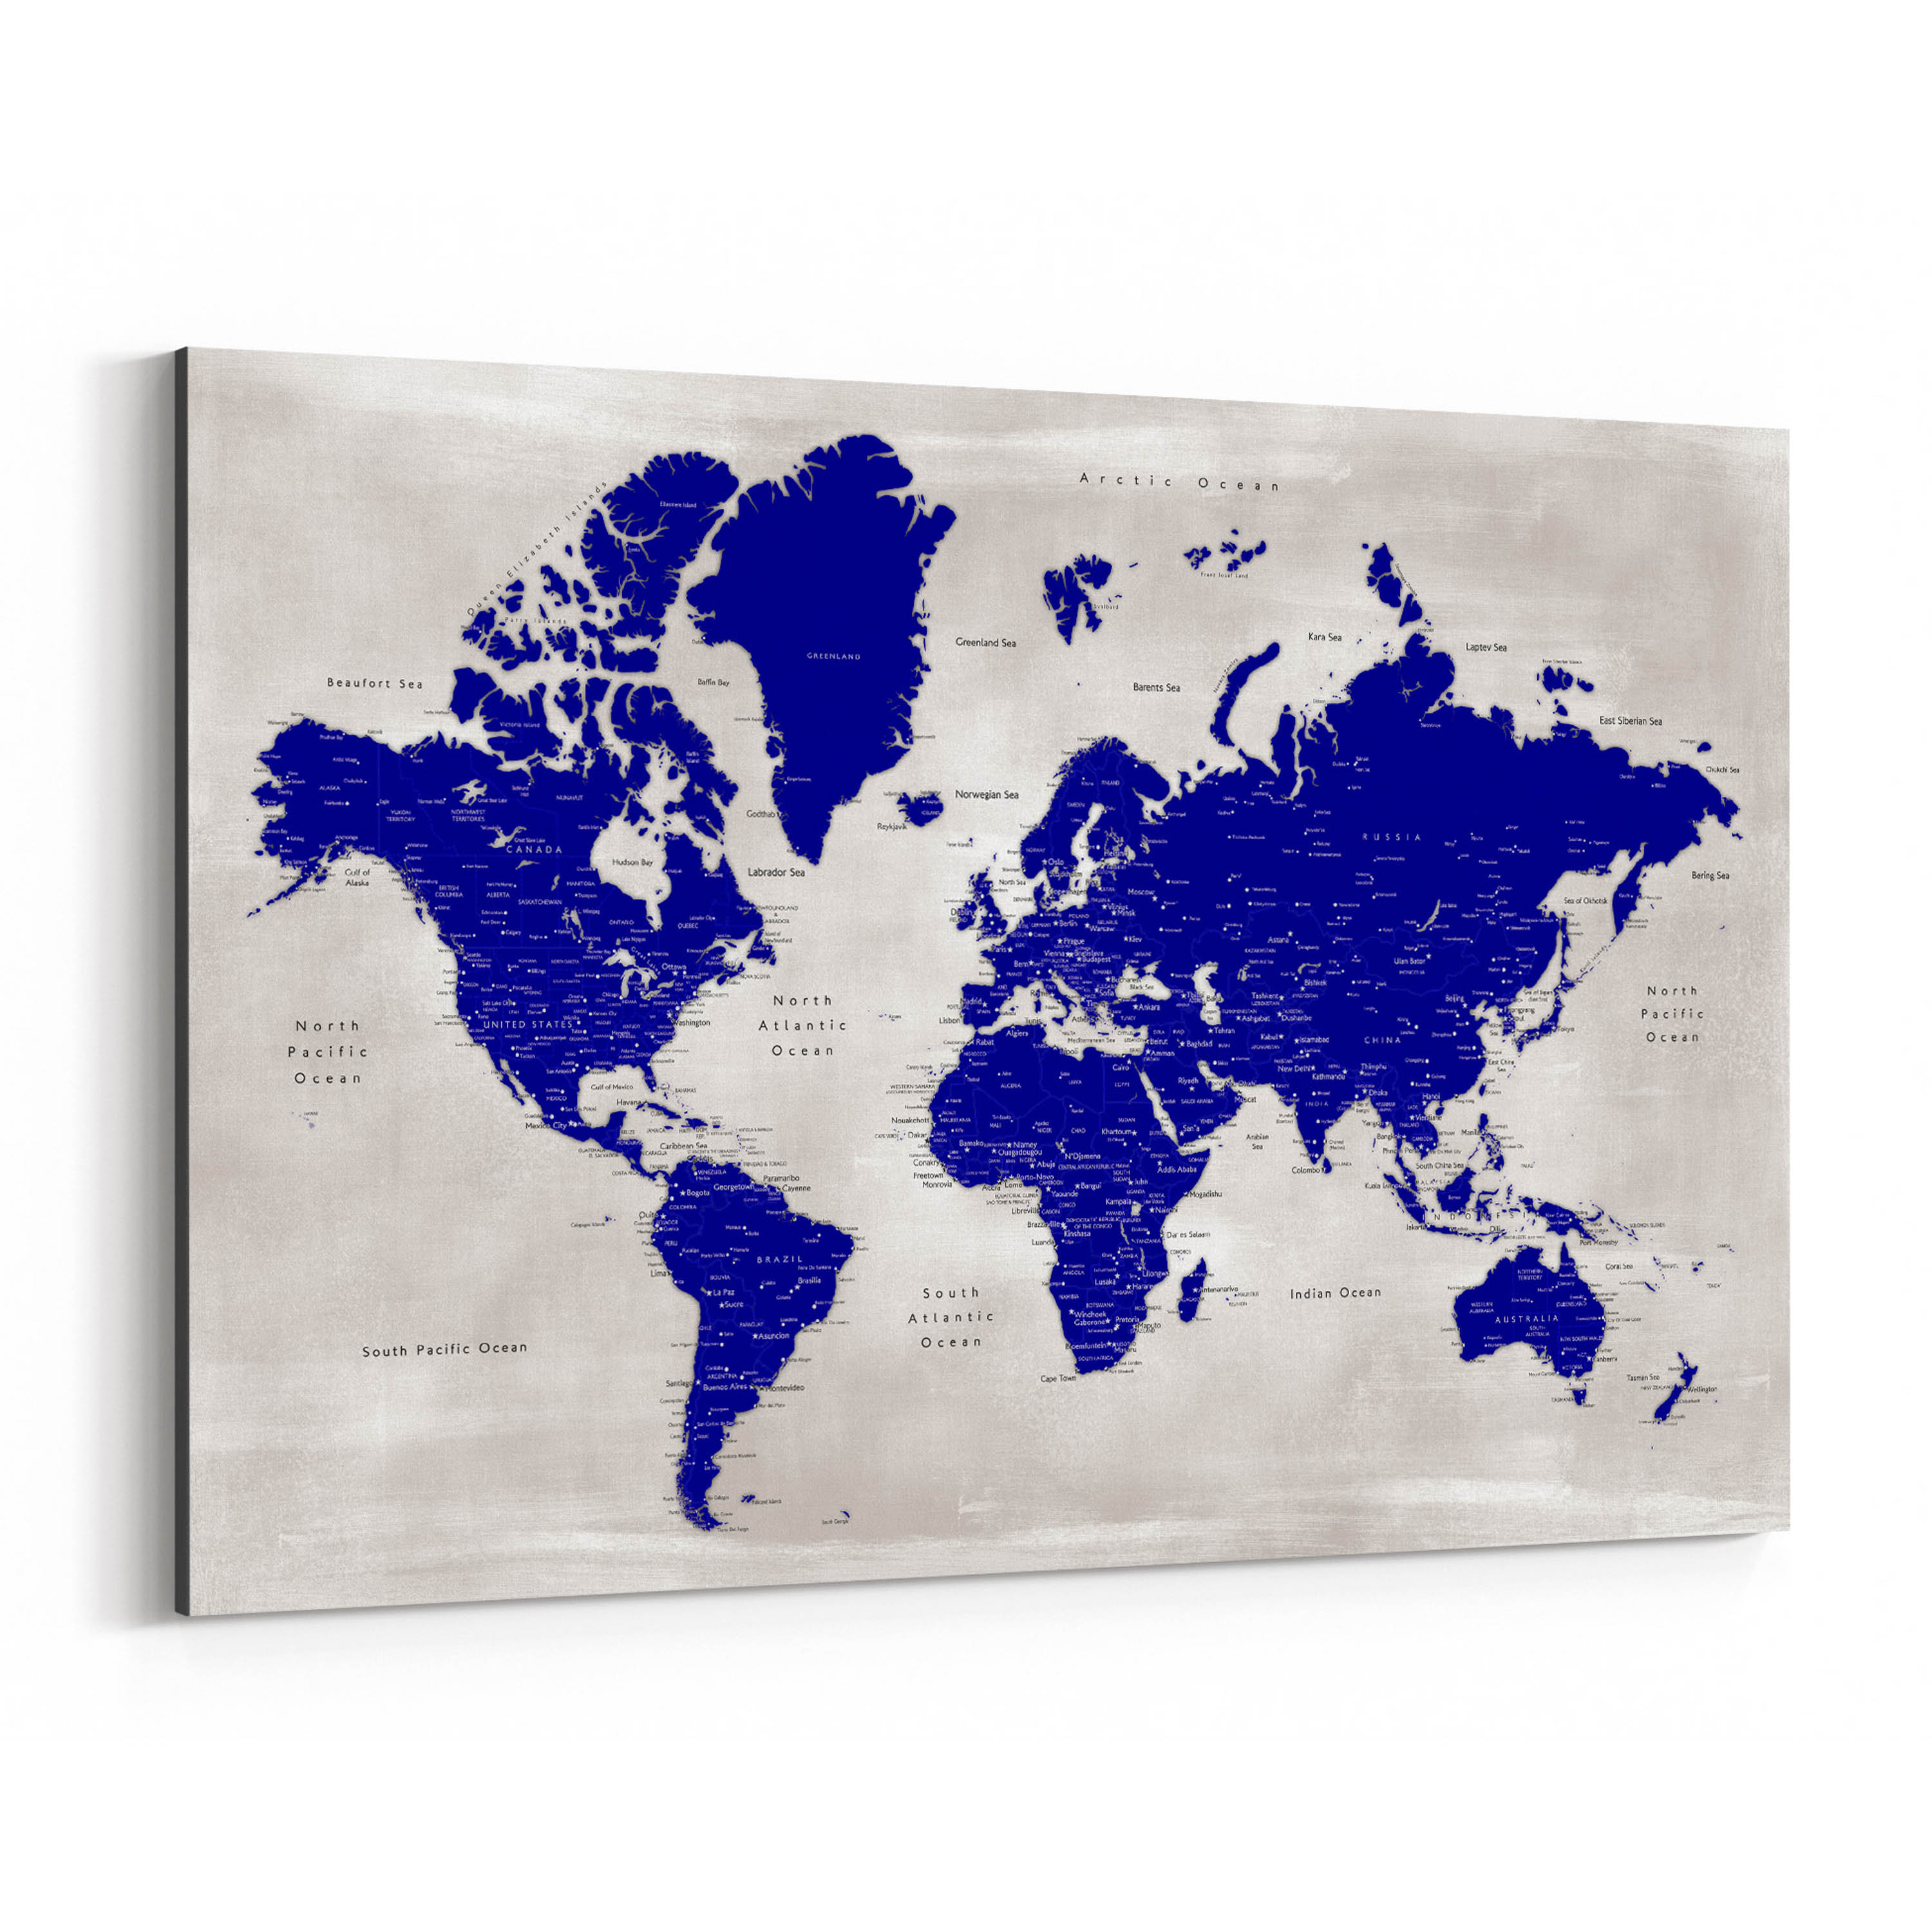 Navy Blue and Distressed Grey World Map with Cities Australia Map No Cities on map of austria with cities, delaware map with cities, australia with cities geography, australia map of cities and parks, australia airports, large map of australia with cities, australia major map capital cities, australia cities and towns, physical map of germany with cities, australia flag, australia water current location latitude and longitude, brazil map with cities,